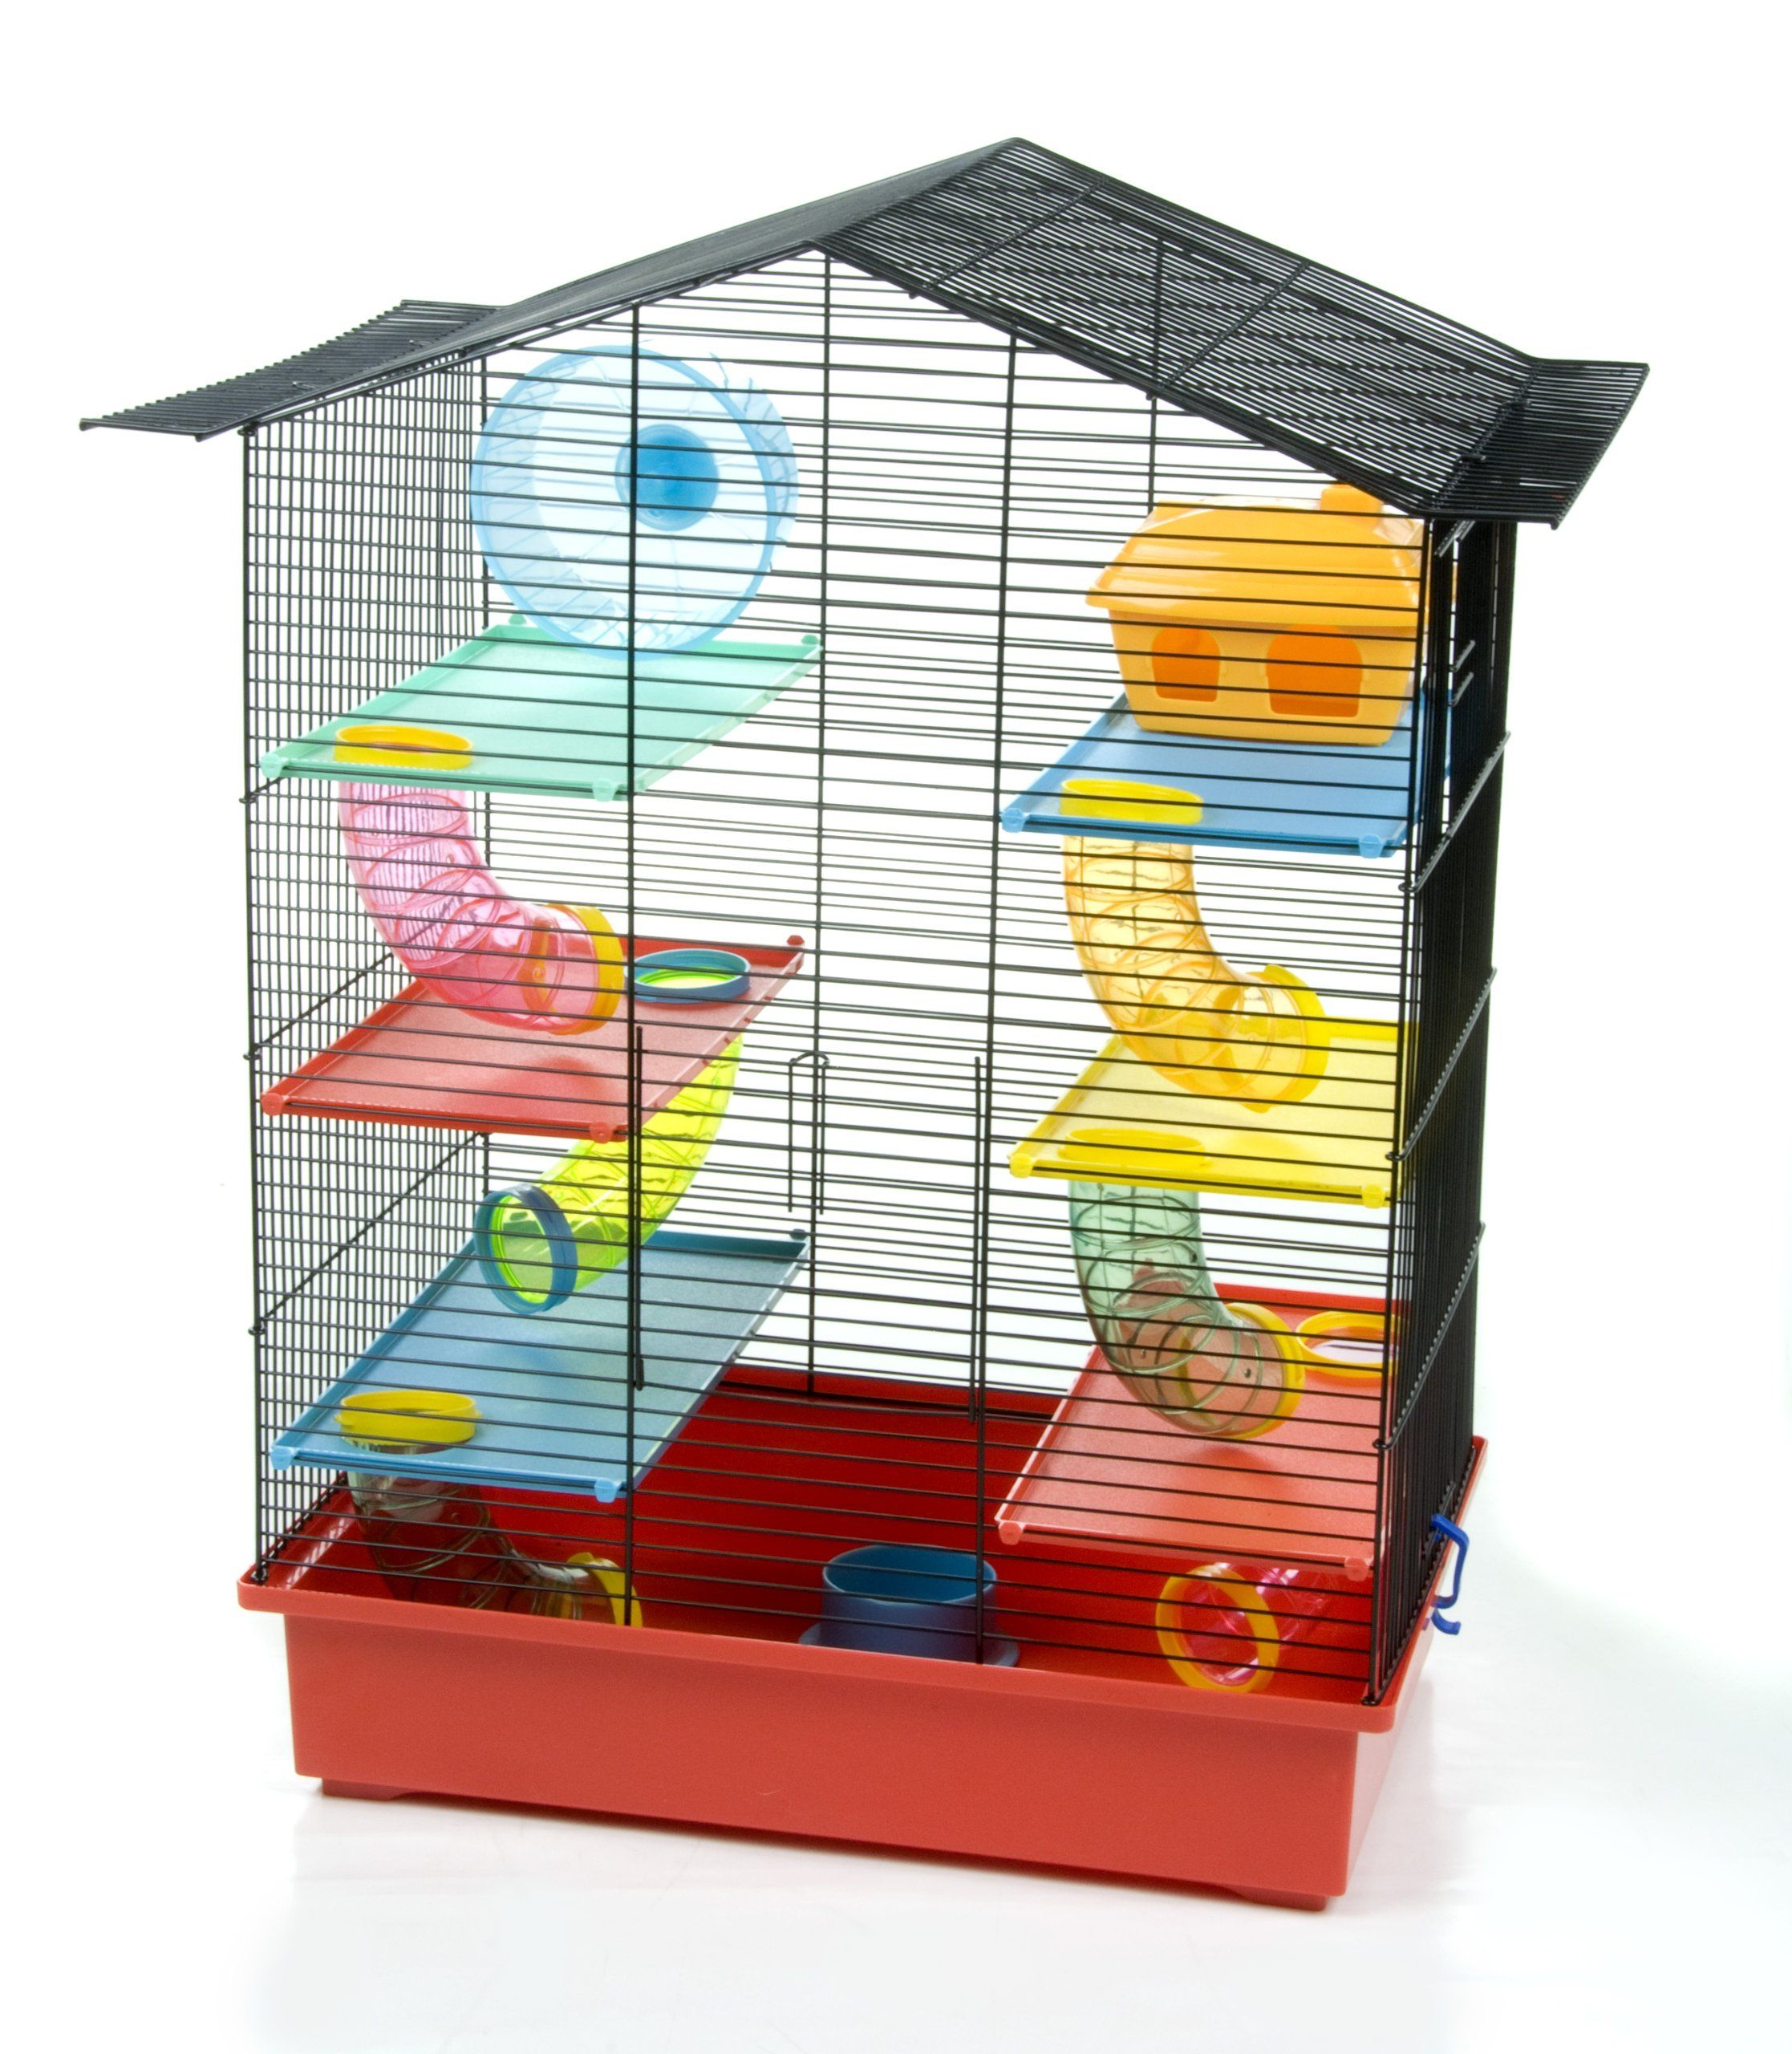 Barbie Wire Hamster Cage See The Image Web Link Even More Information This Is An Affiliate Link Smallanimal Hamster Cage Hamster House Hamster